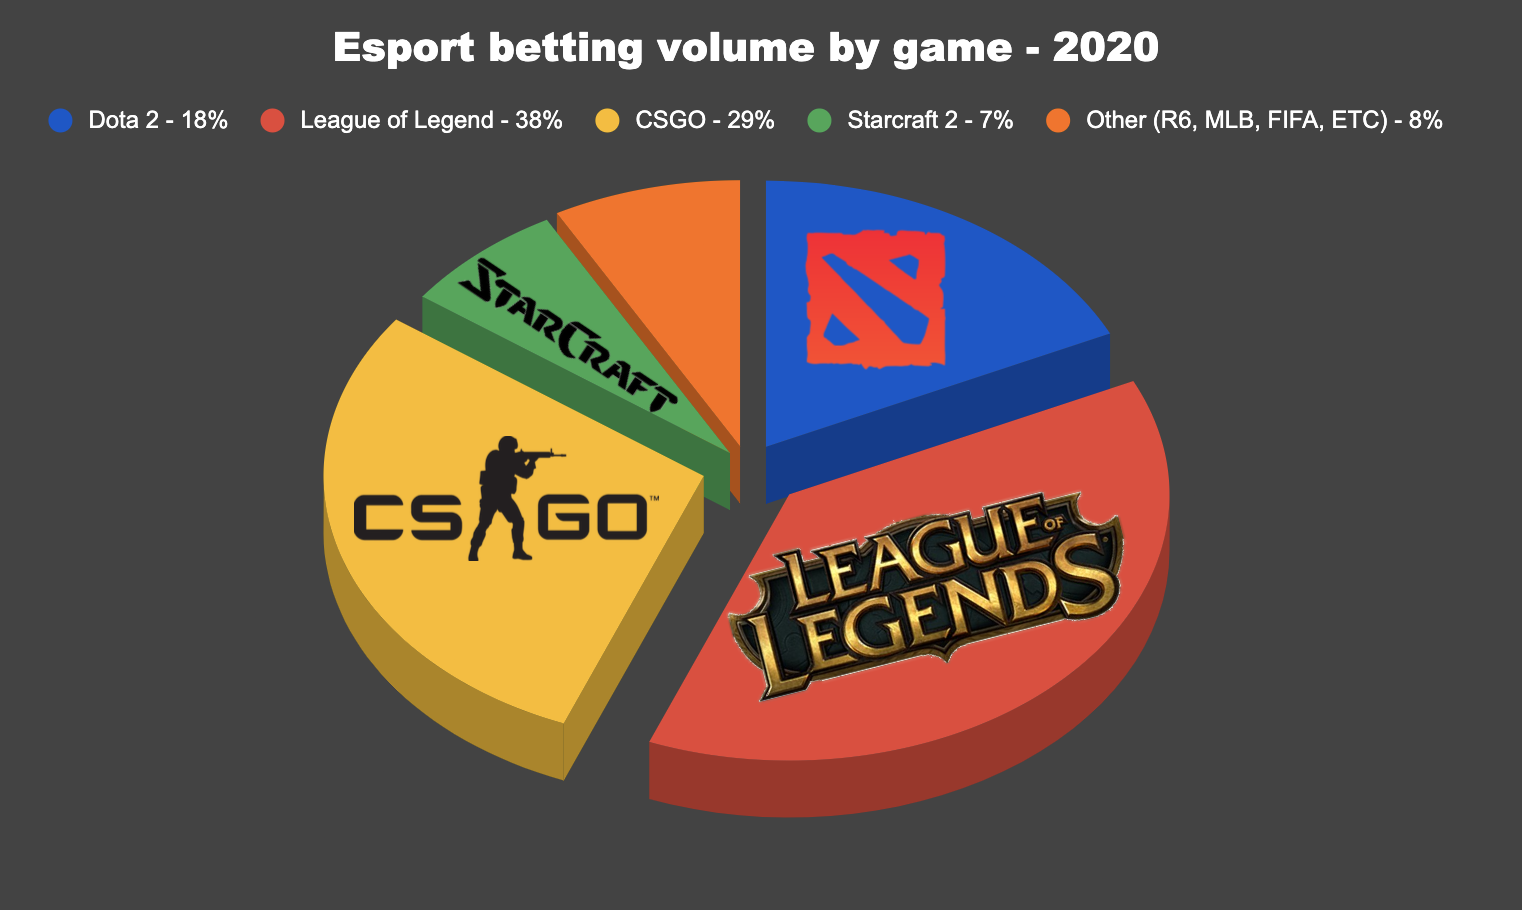 Crypto2win image Esports betting volume by game 2020